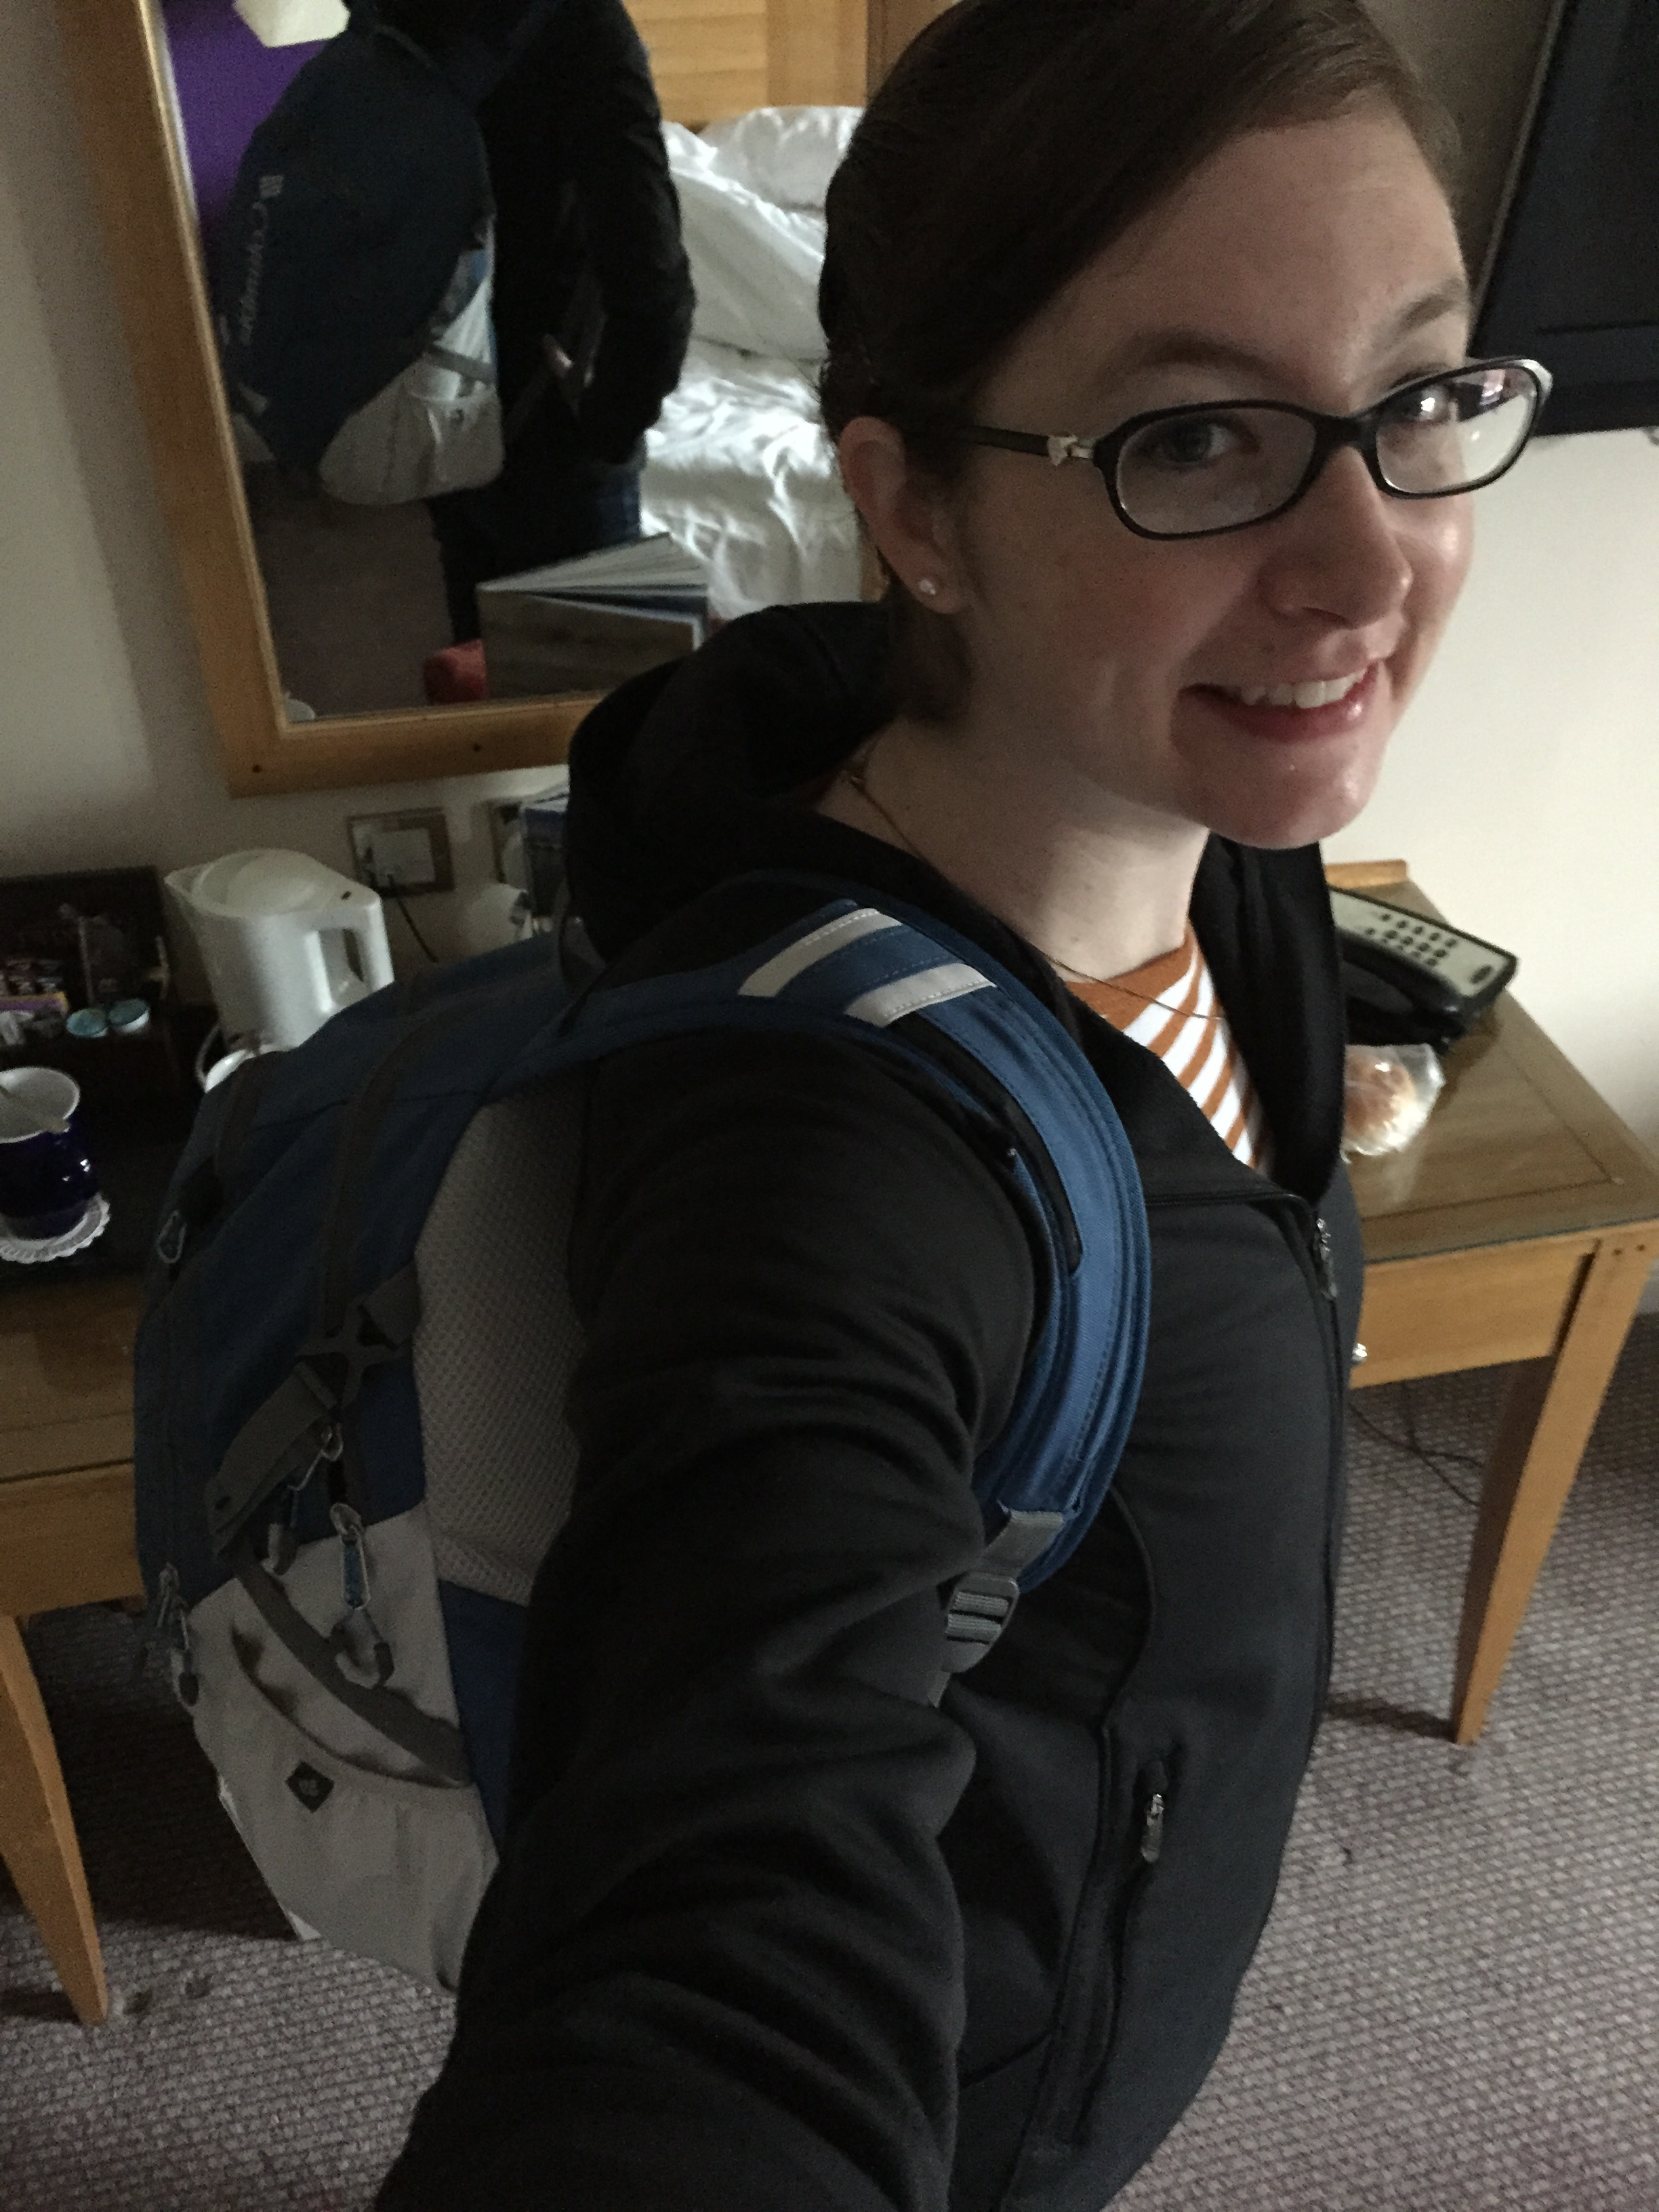 There's four days' worth of clothes on my back right there, plus a computer and two pairs of shoes.